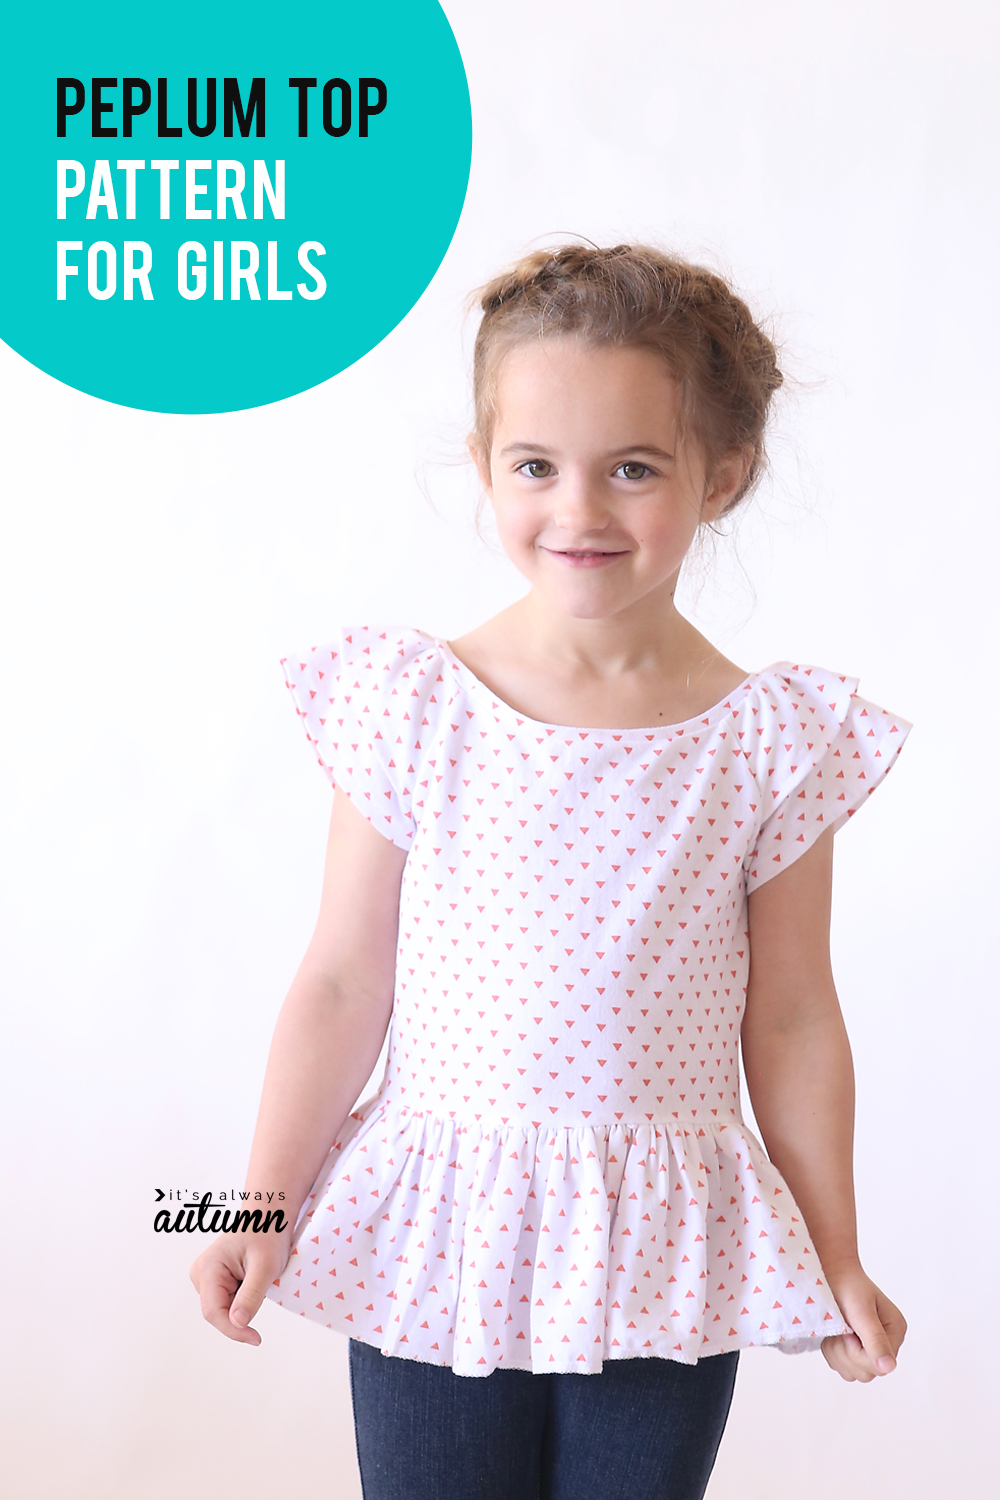 Cute peplum top sewing pattern for girls!